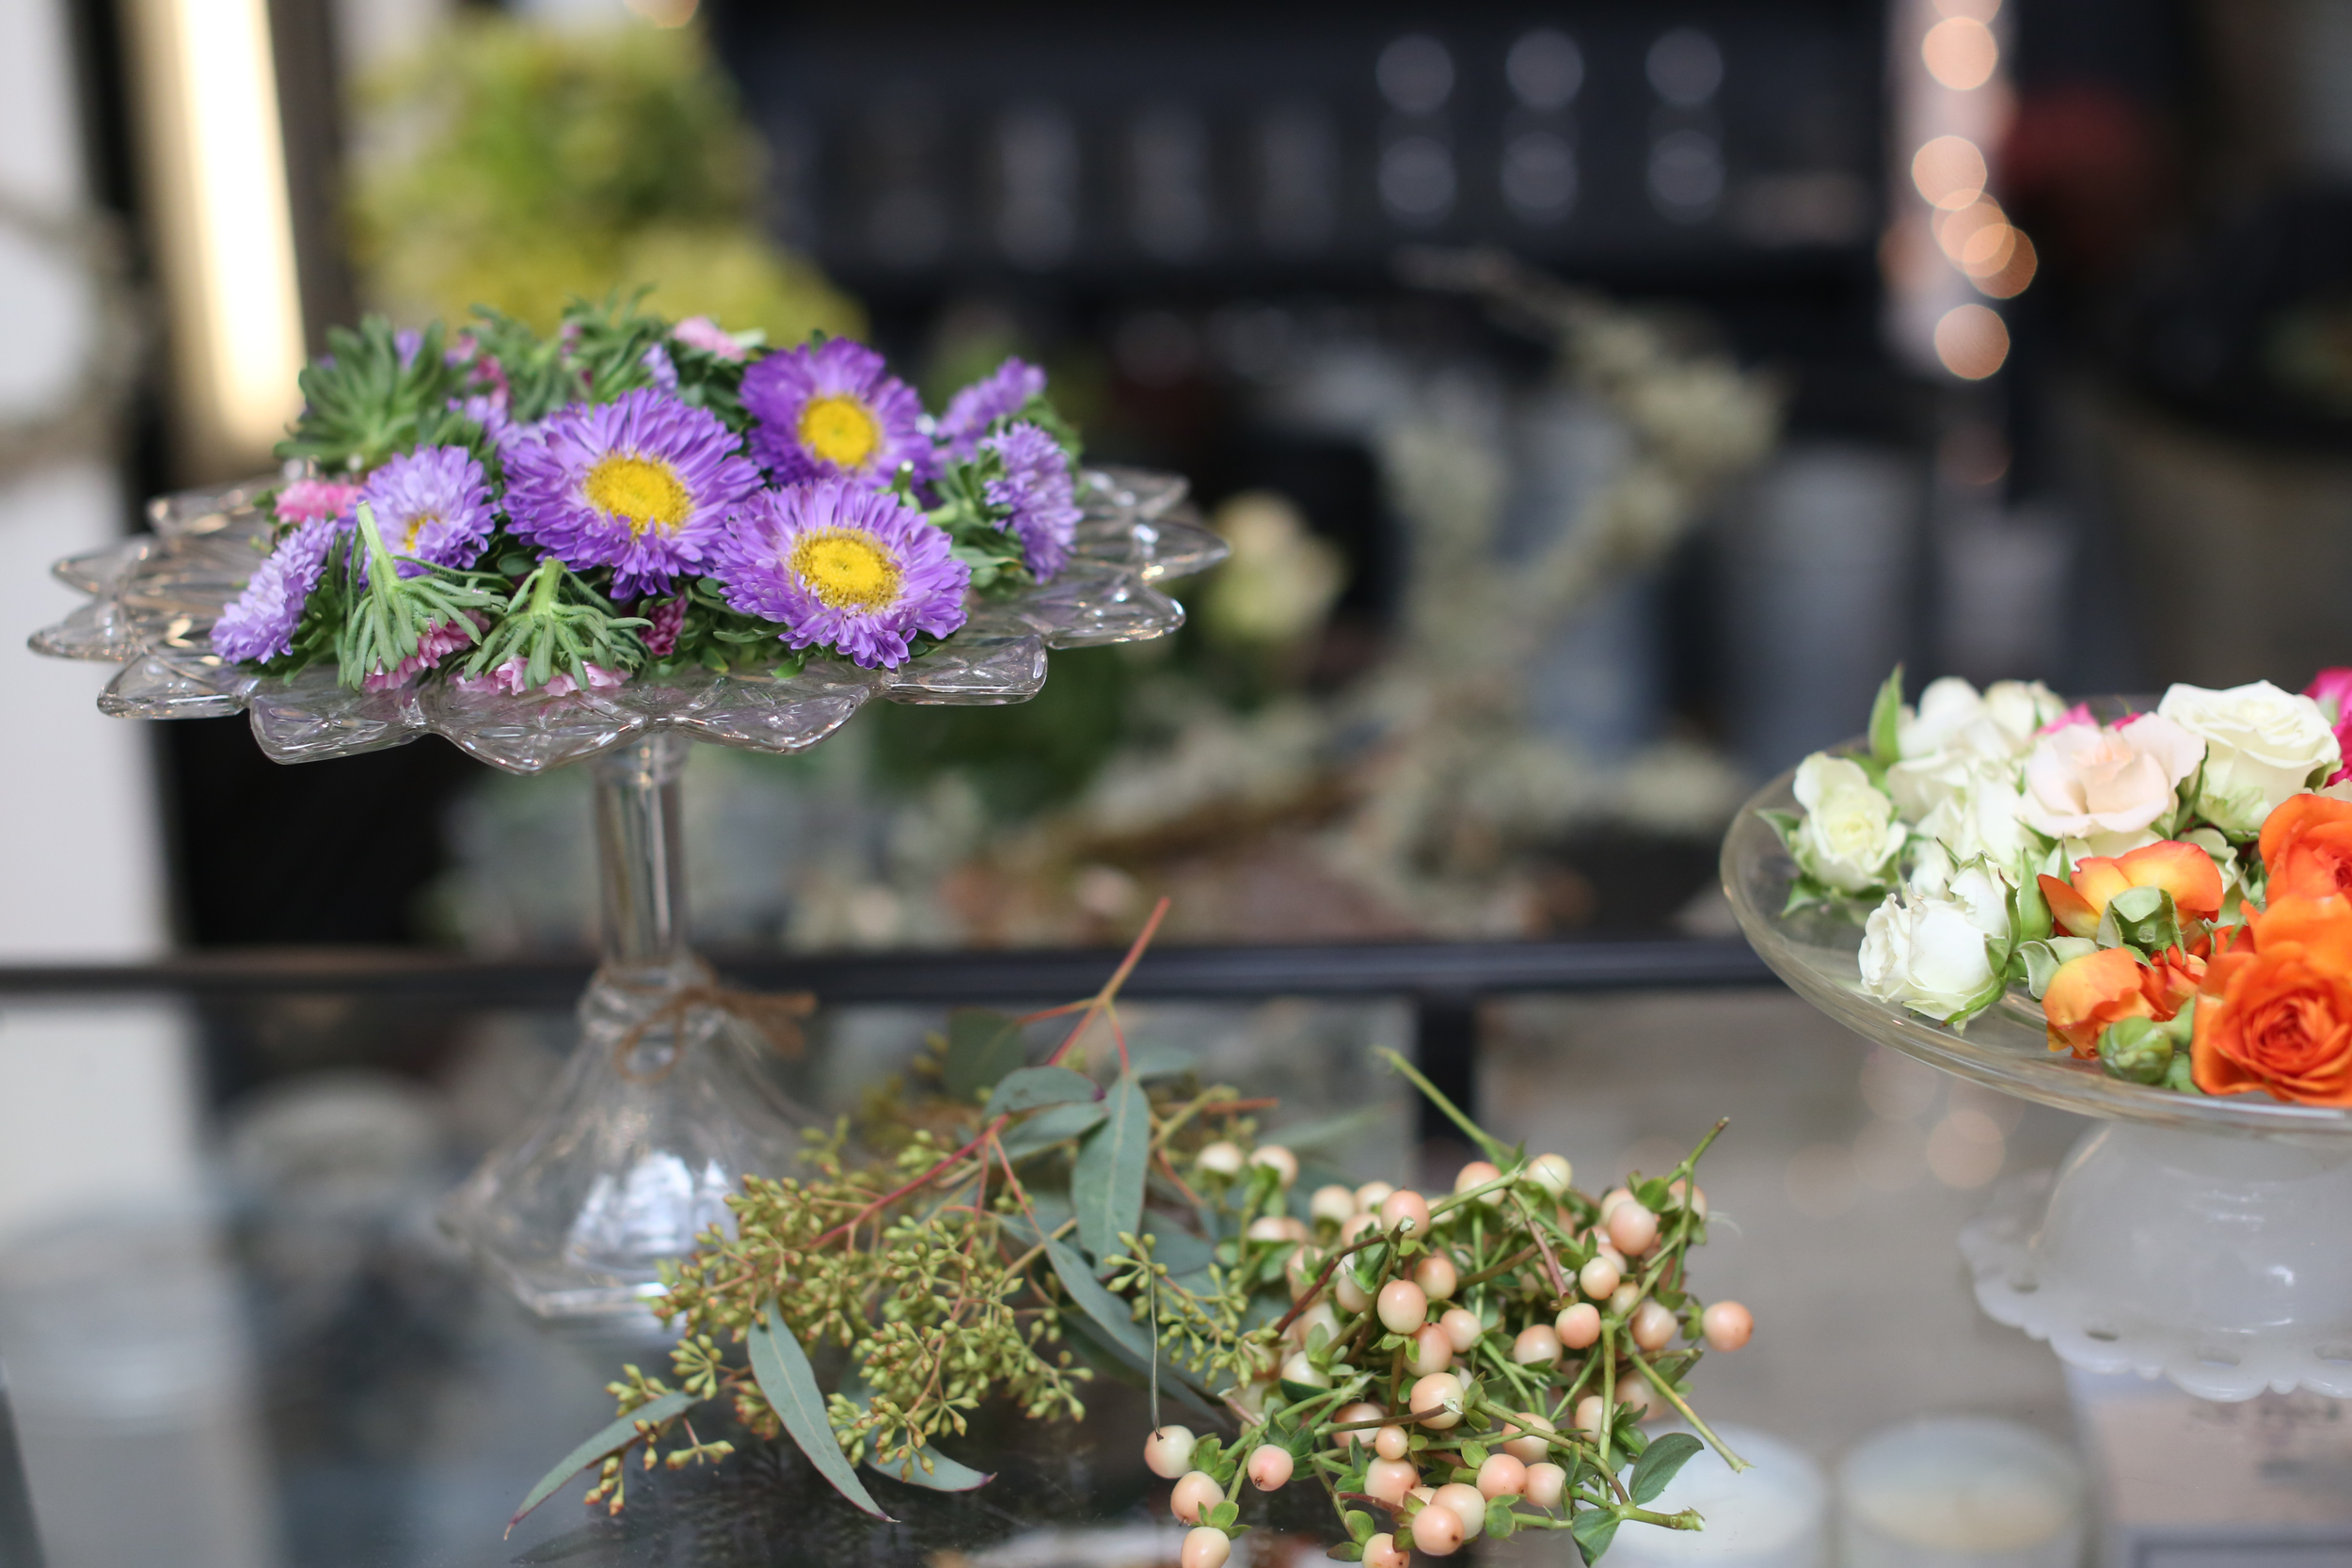 Flowers on Trays.jpg